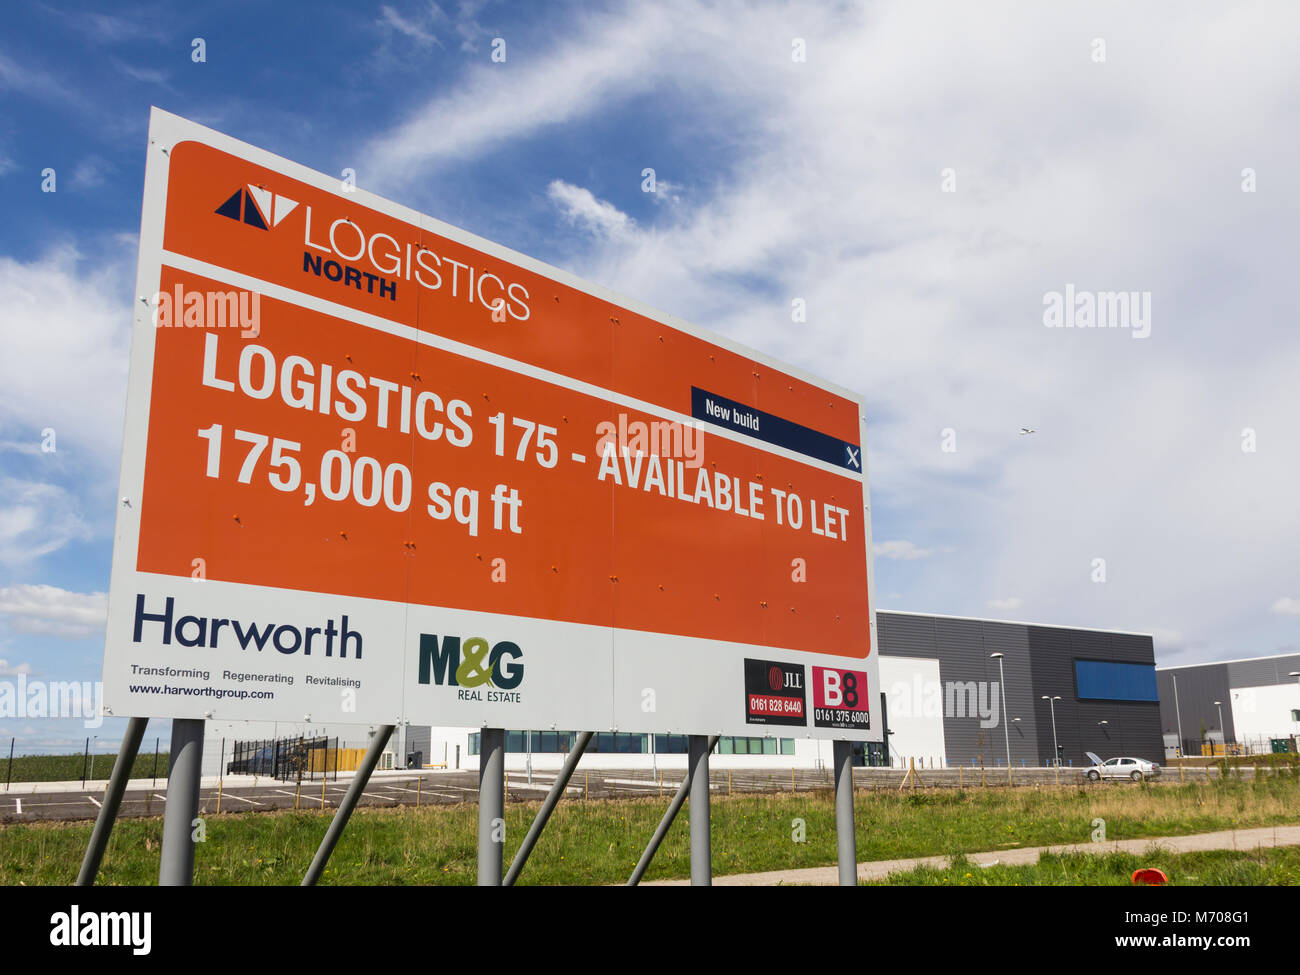 Newly built distribution warehouse business factory unit to let at Logistics North, Bolton, unoccupied and waiting - Stock Image